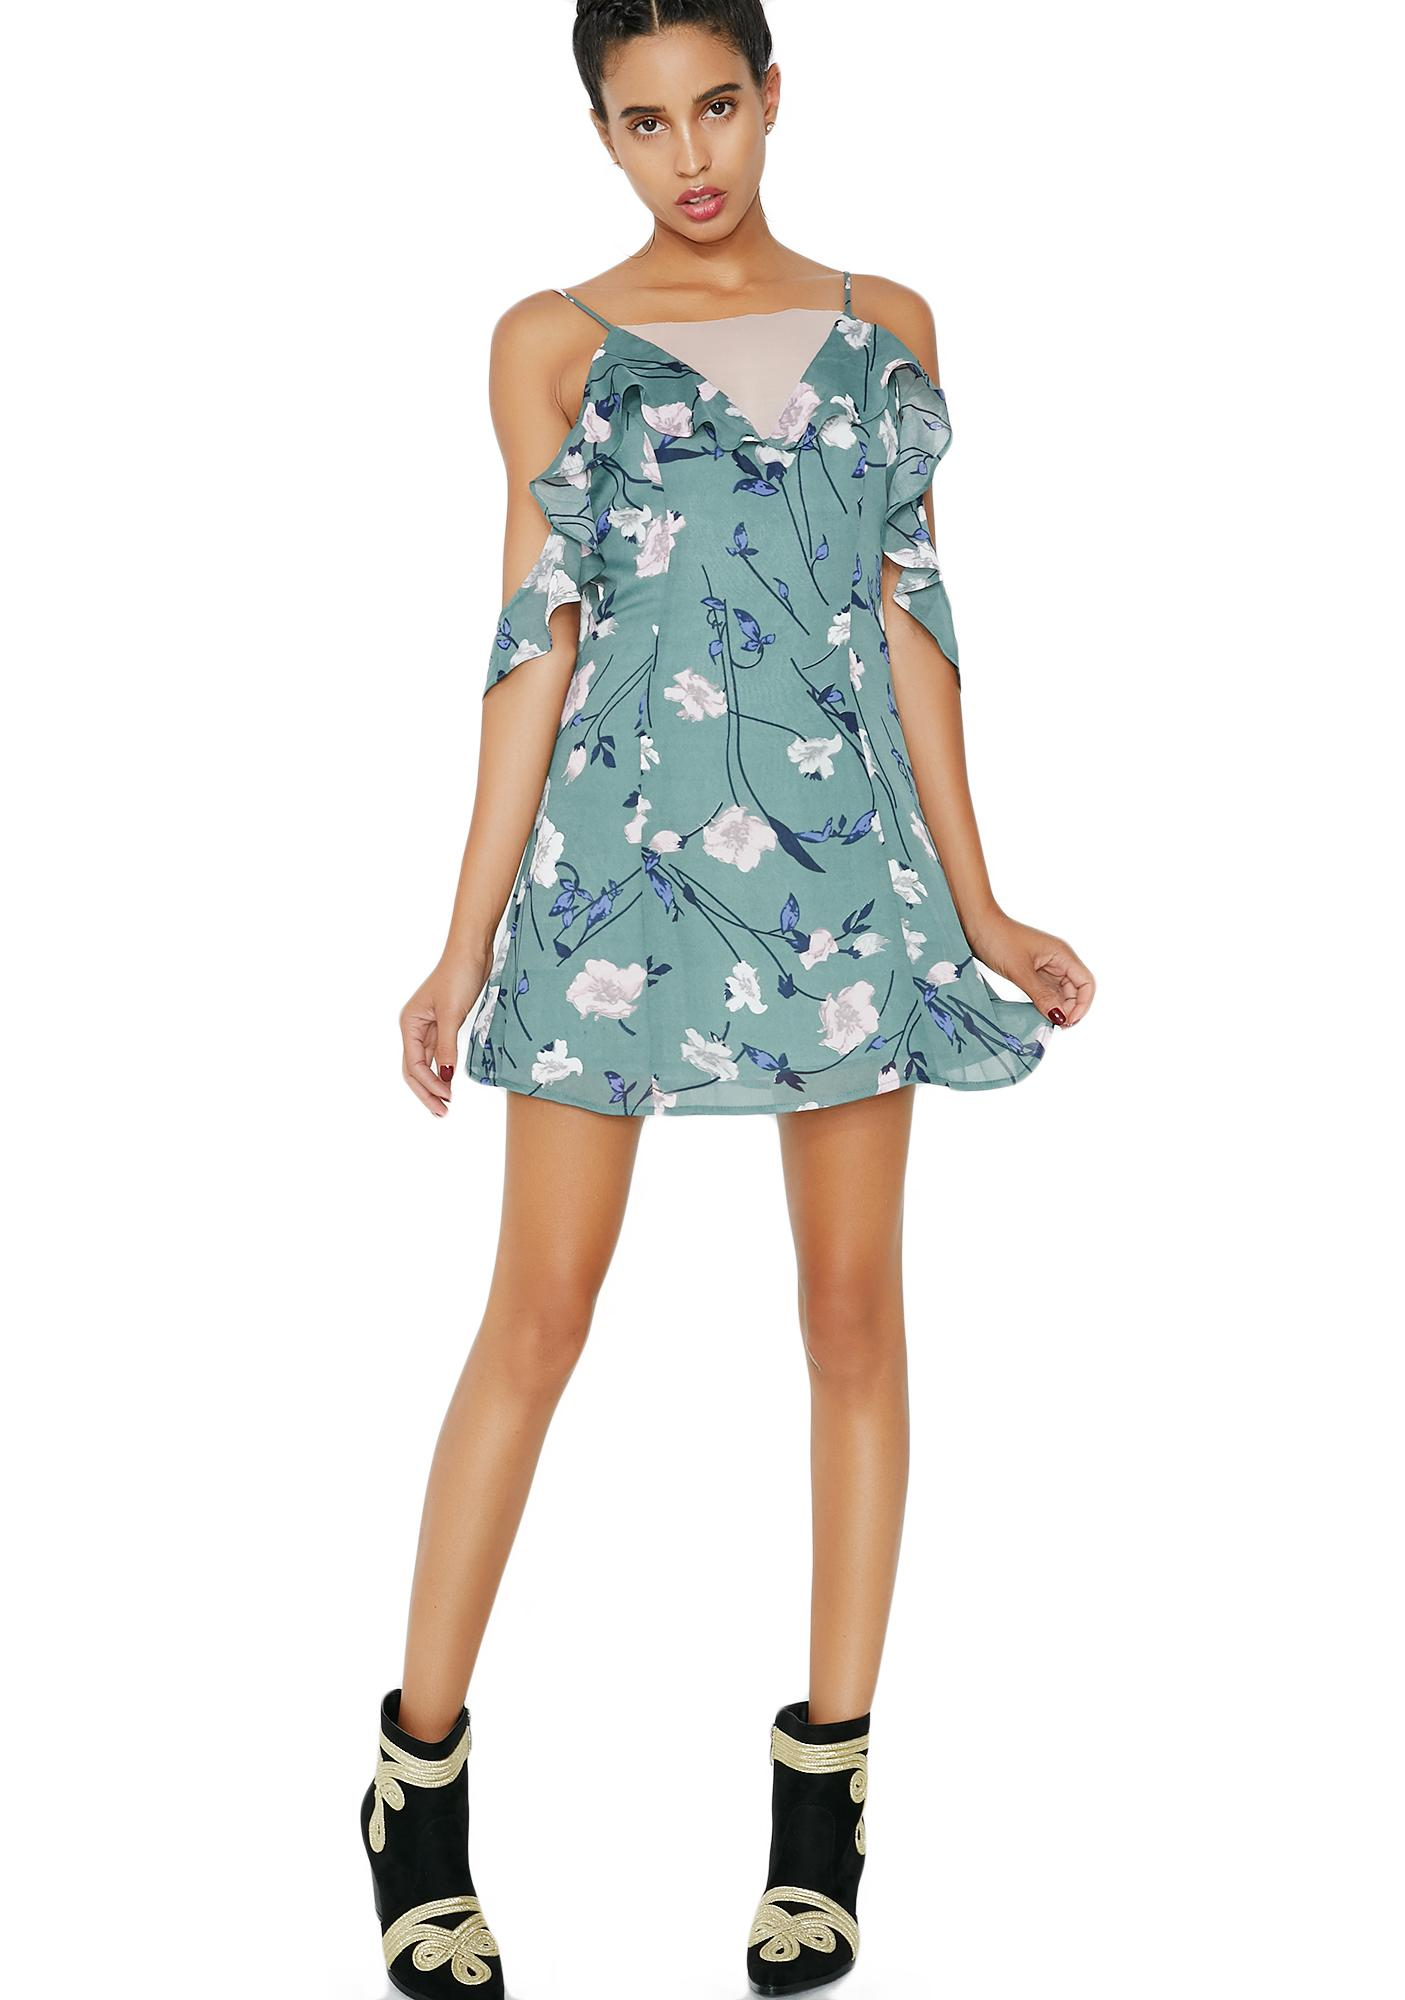 Miss Bliss Floral Mini Dress